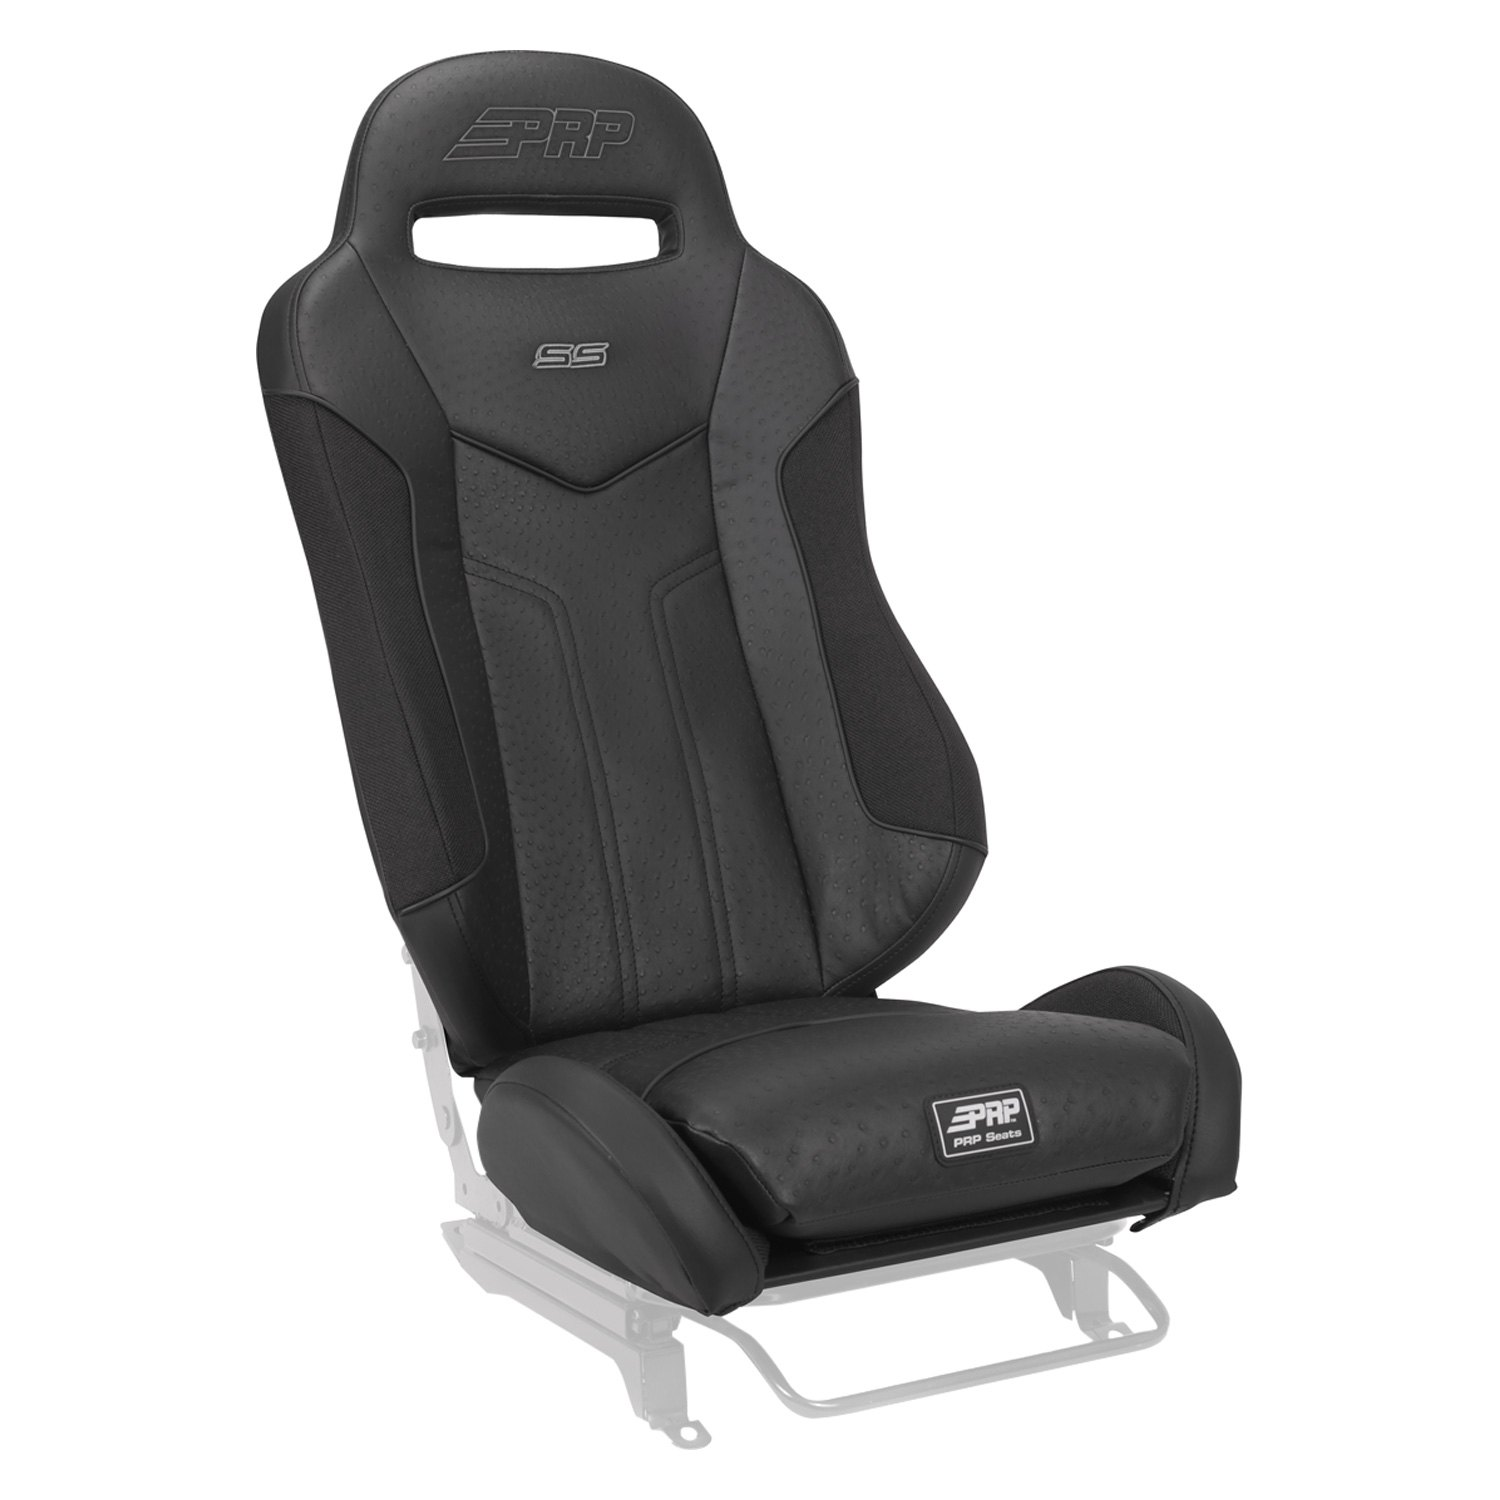 Prp Seats A88 Ss Series Suspension Seat Ebay